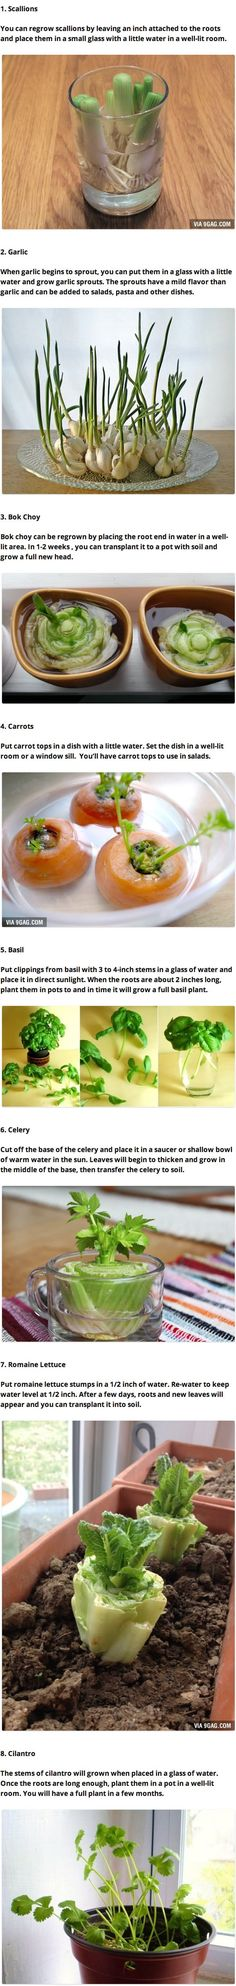 growing plants from scraps